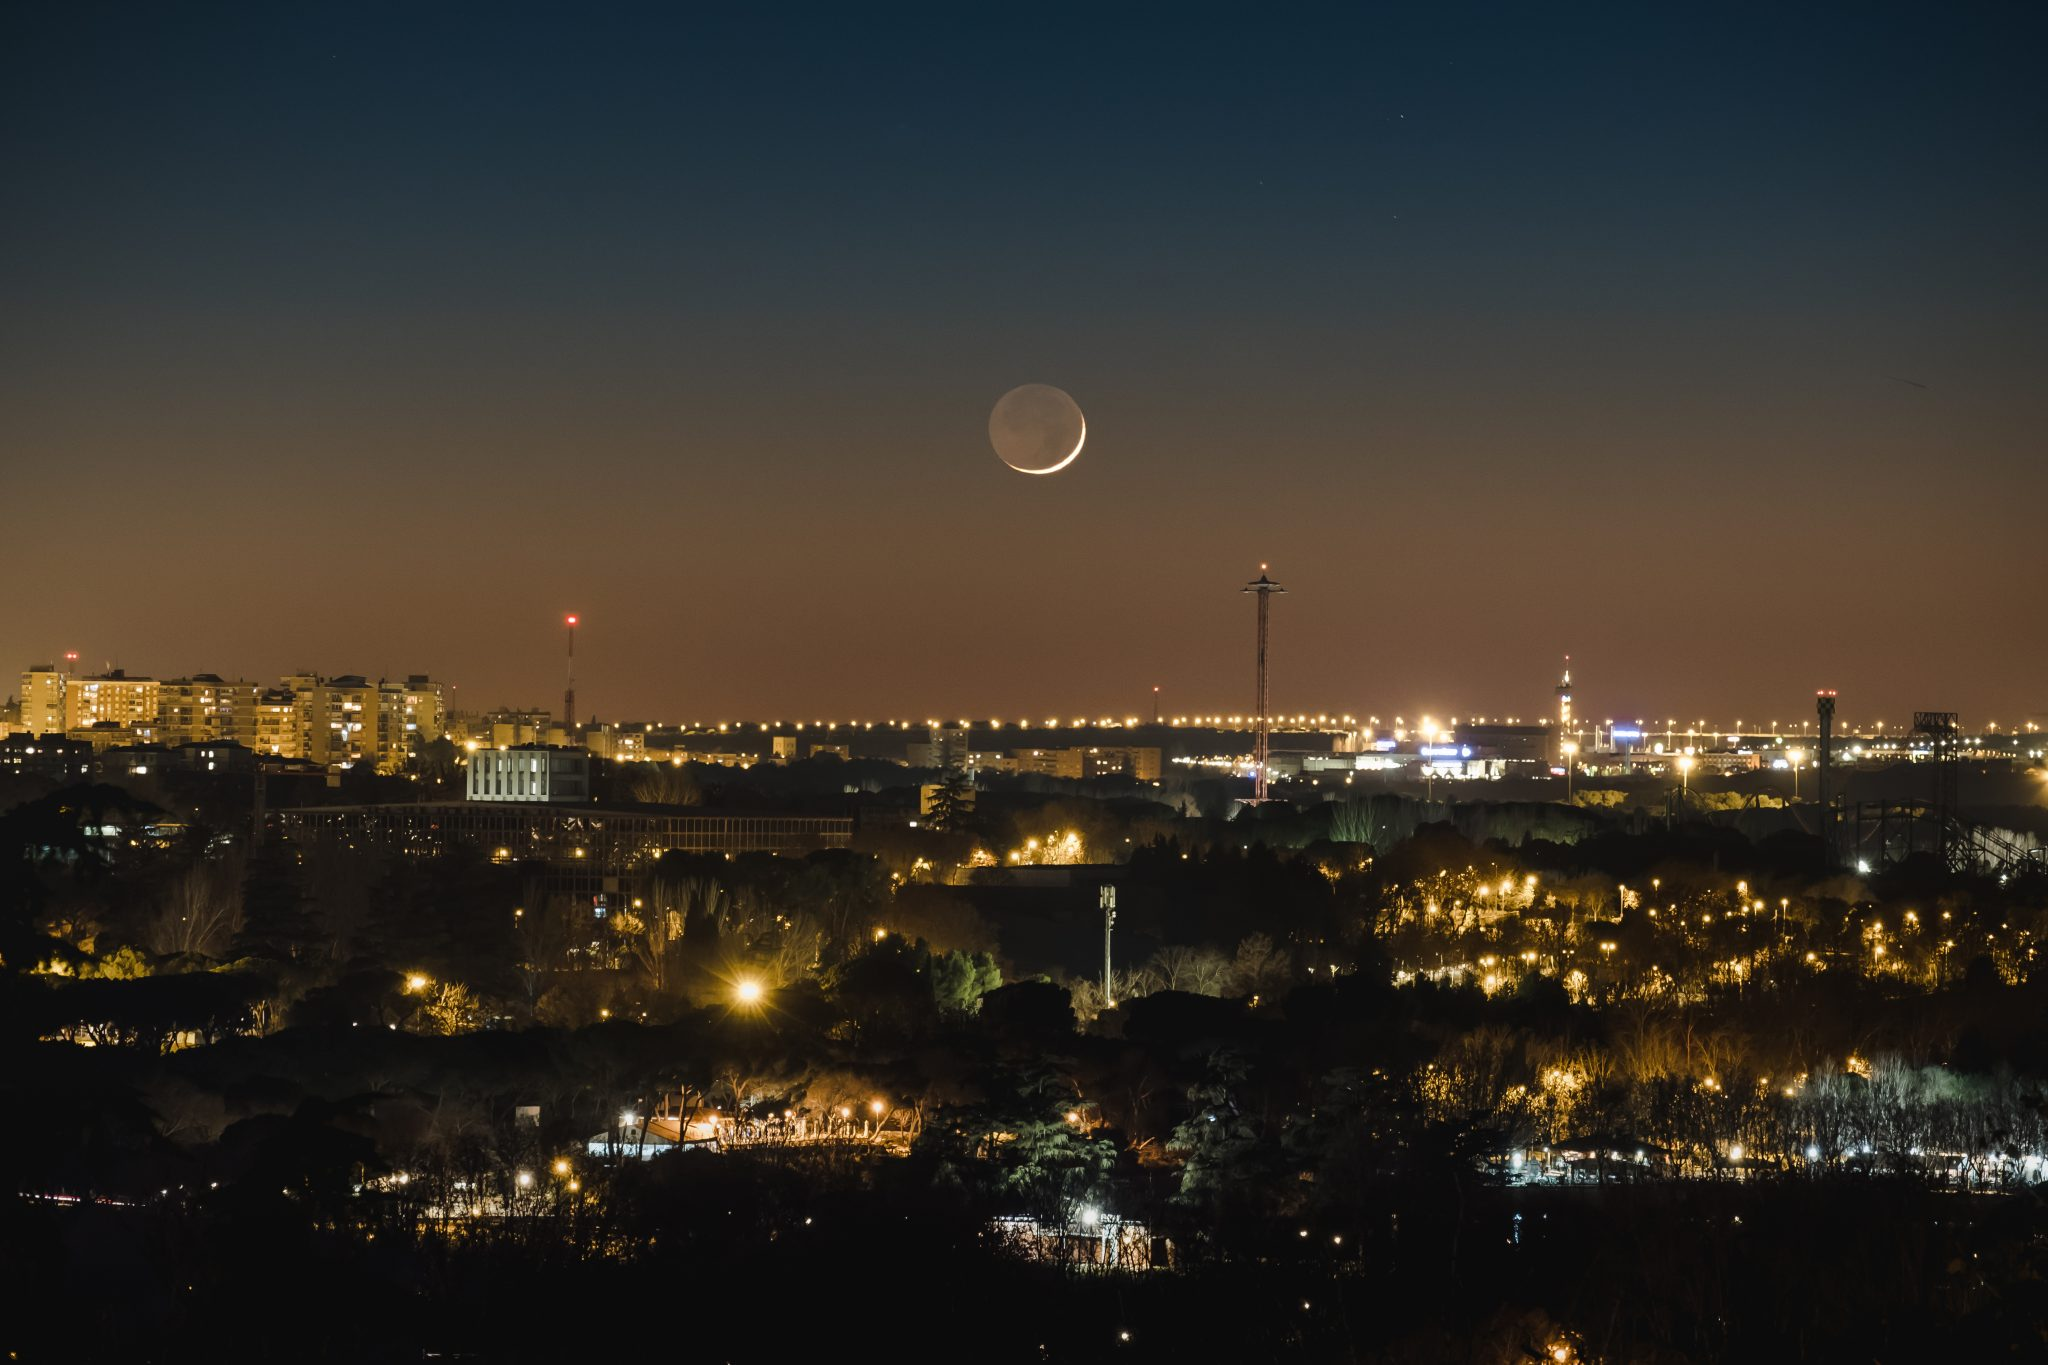 Madrid at night with the big moon shot photo by Jo Kassis